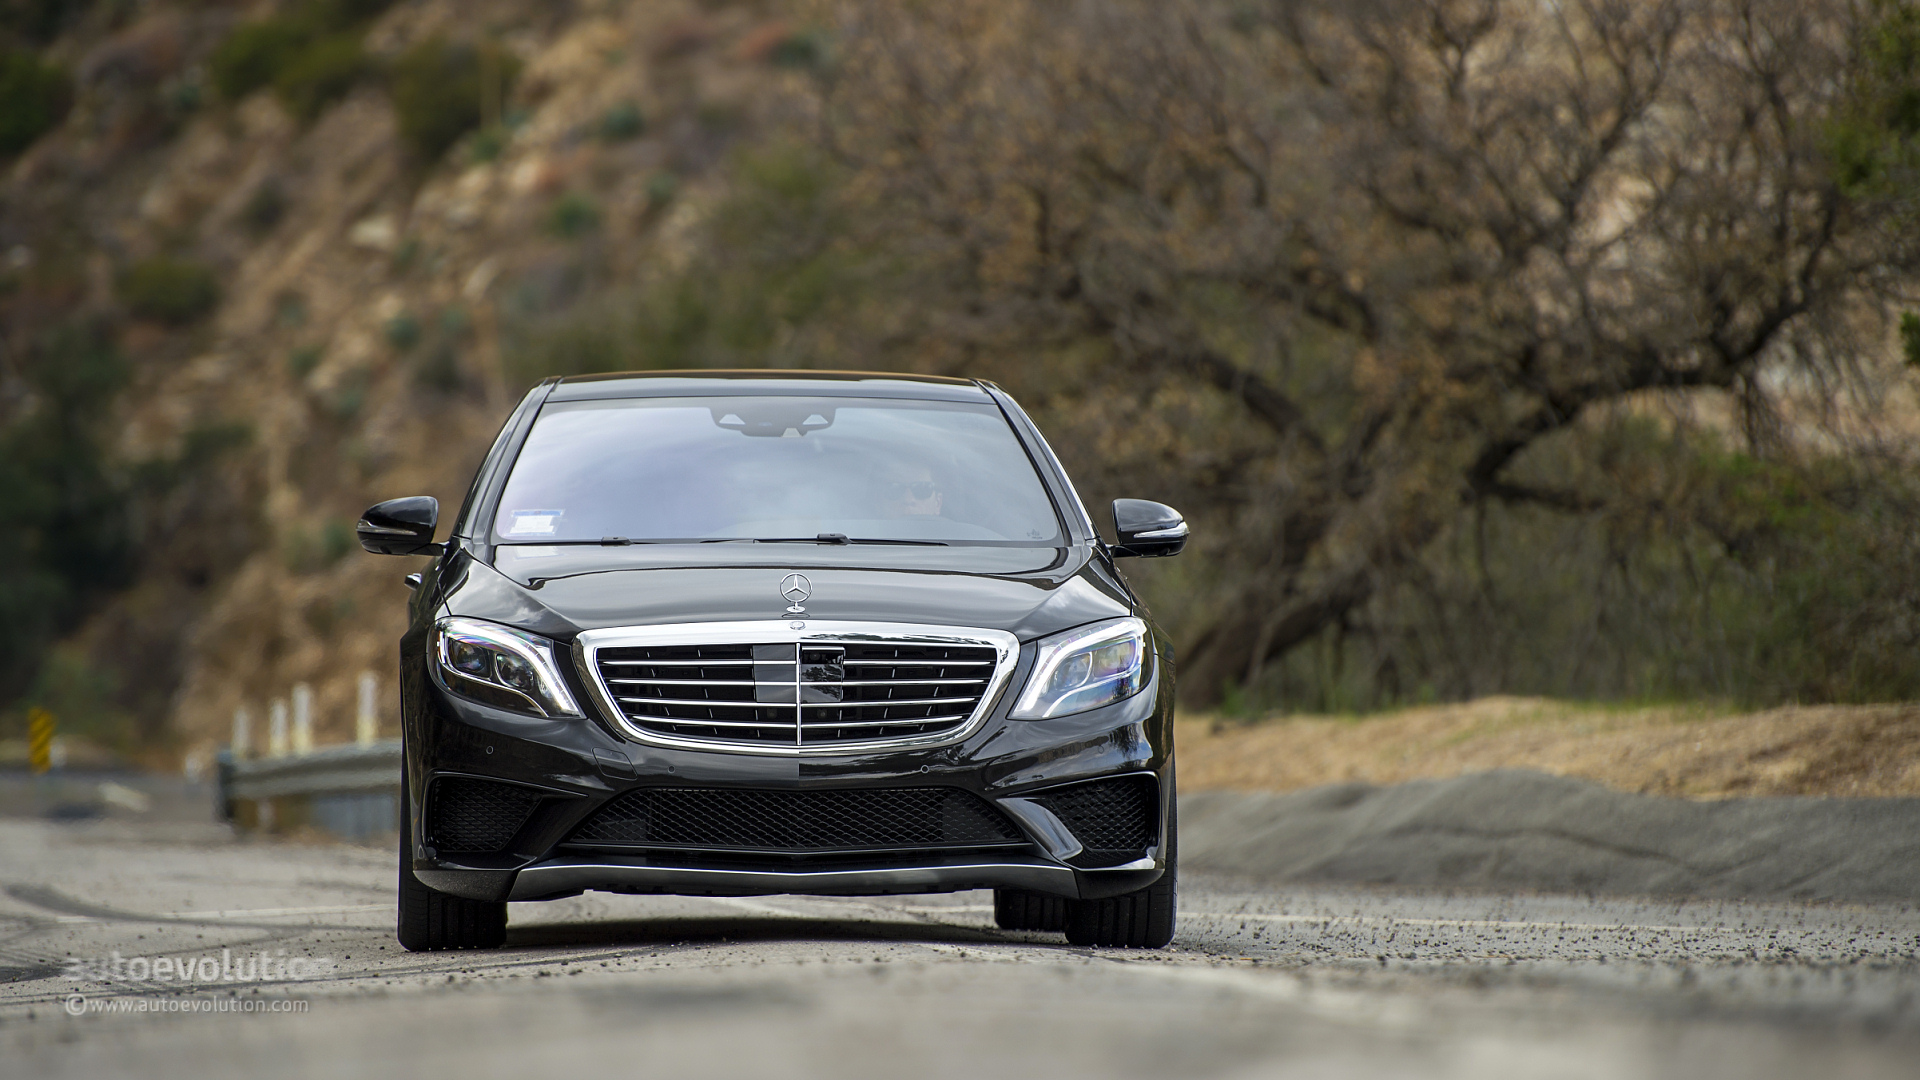 photo gallery 80 - Mercedes Benz S63 Amg 2014